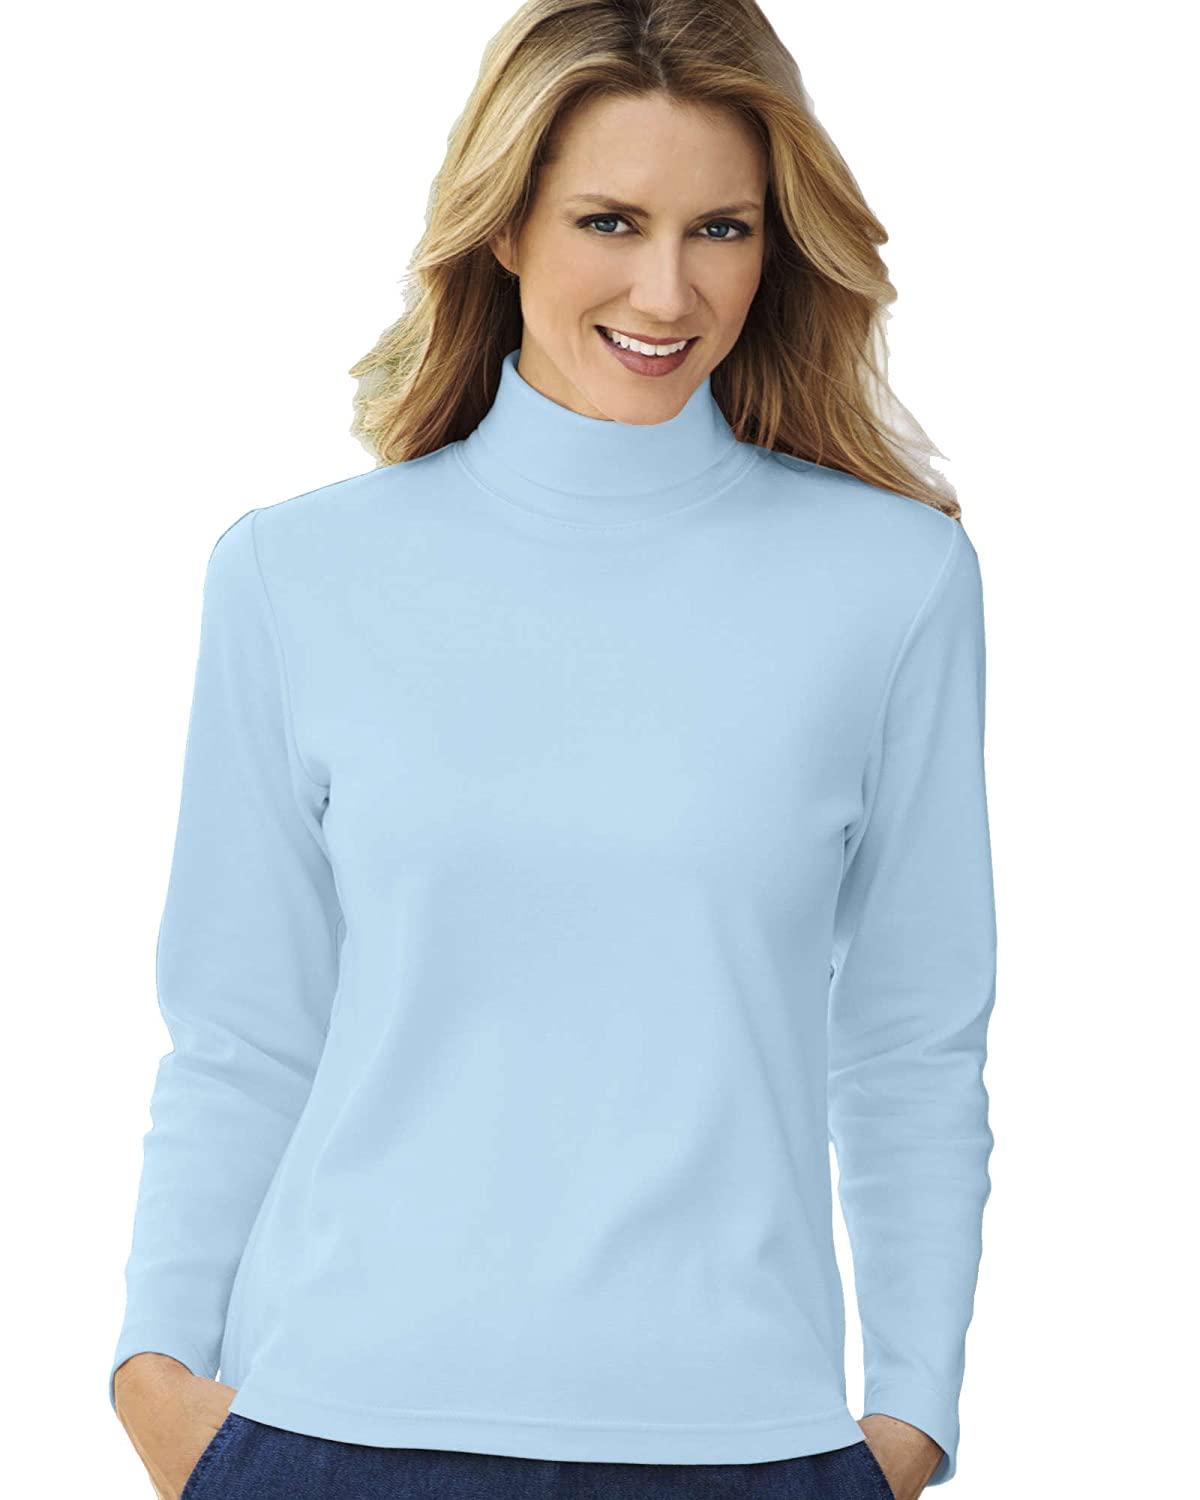 UltraSofts Turtleneck 8640